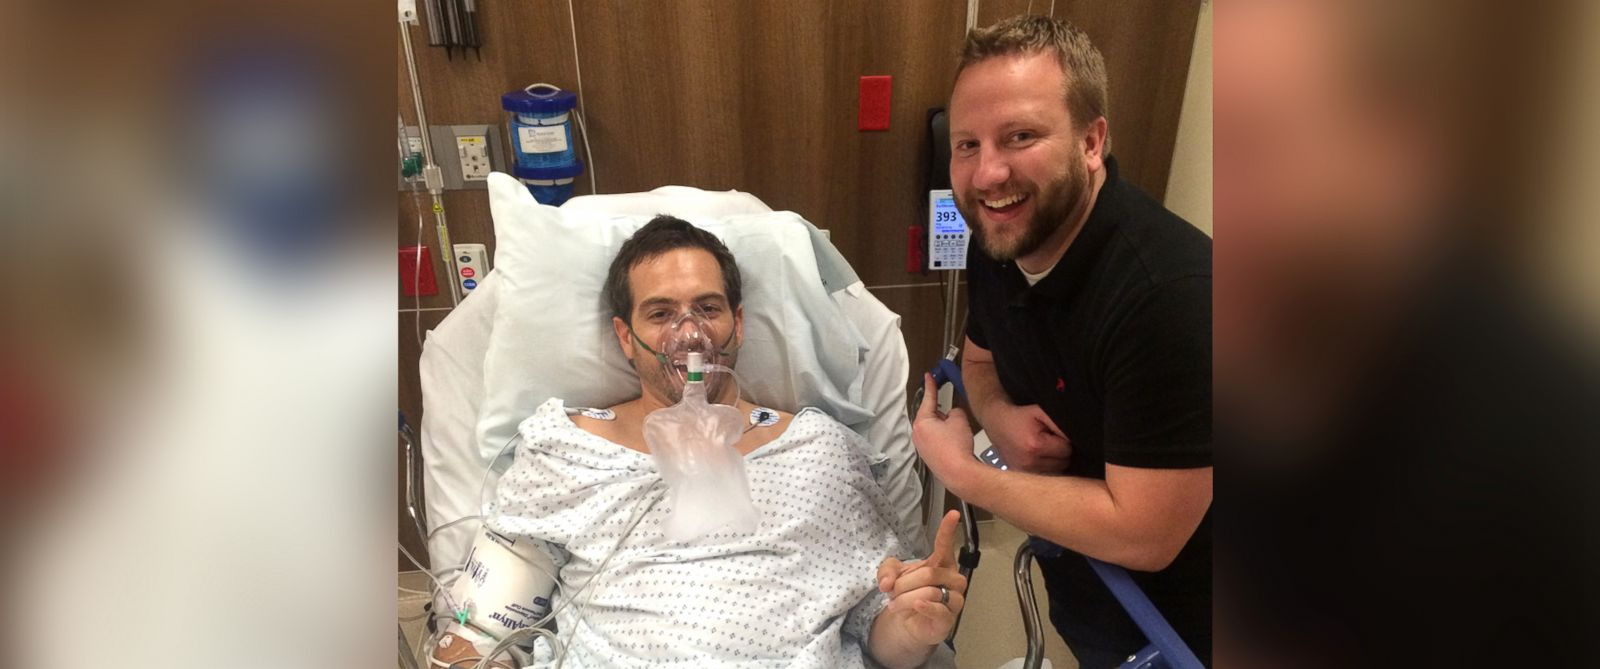 PHOTO: Ryan Roche was hospitalized after chugging eggnog during a work party.